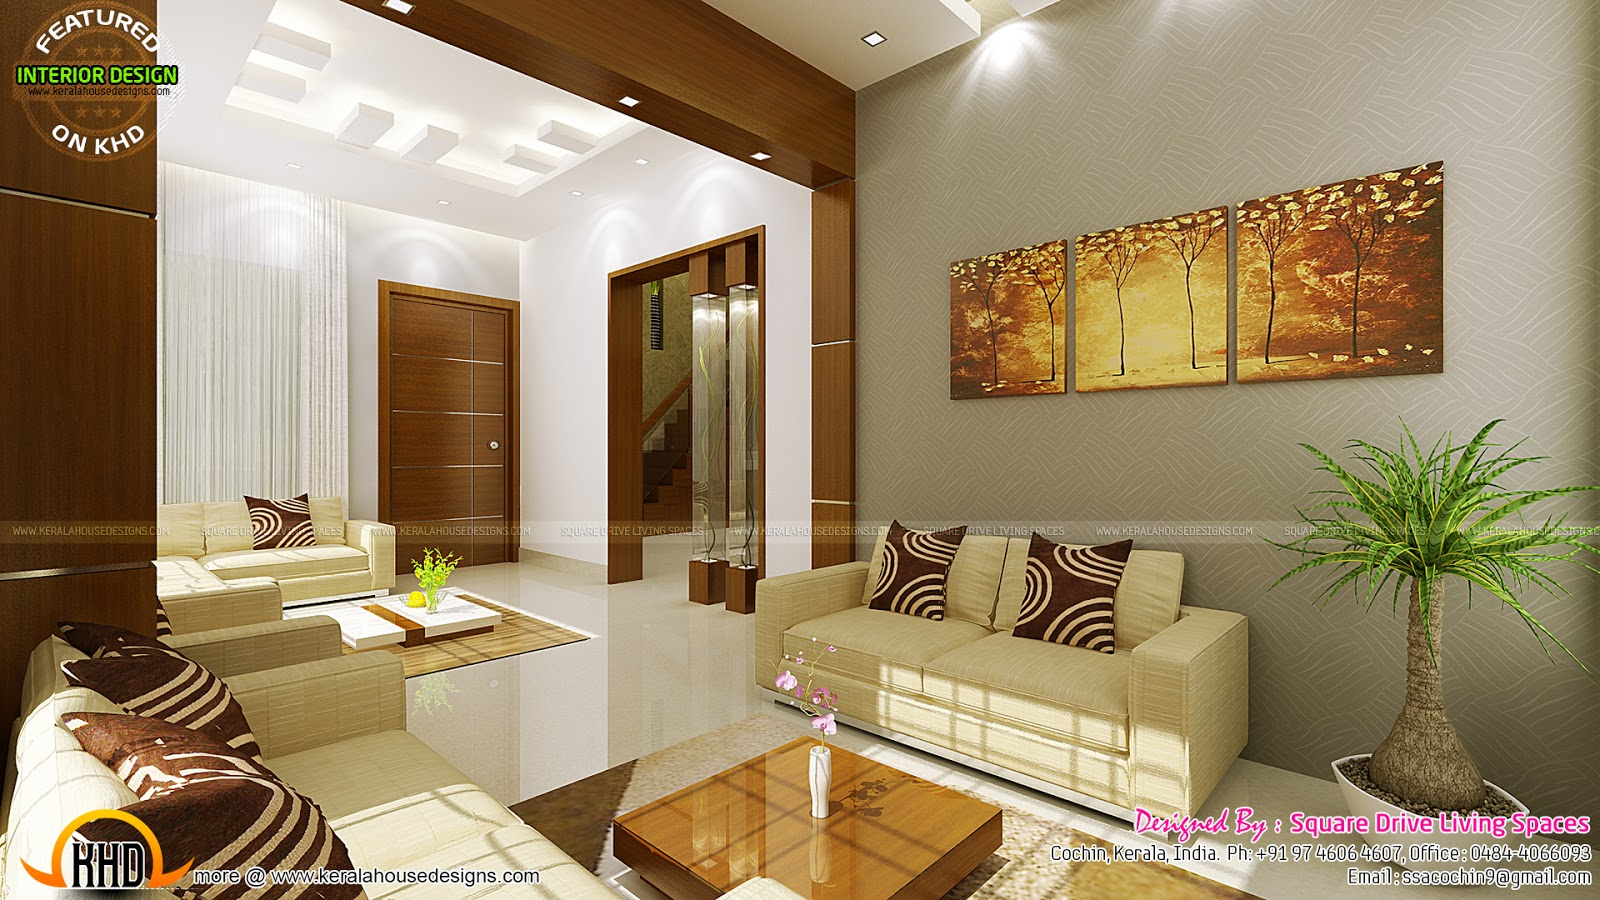 Contemporary kitchen dining and living room kerala home design and floor plans - Interiors of small dining room ...